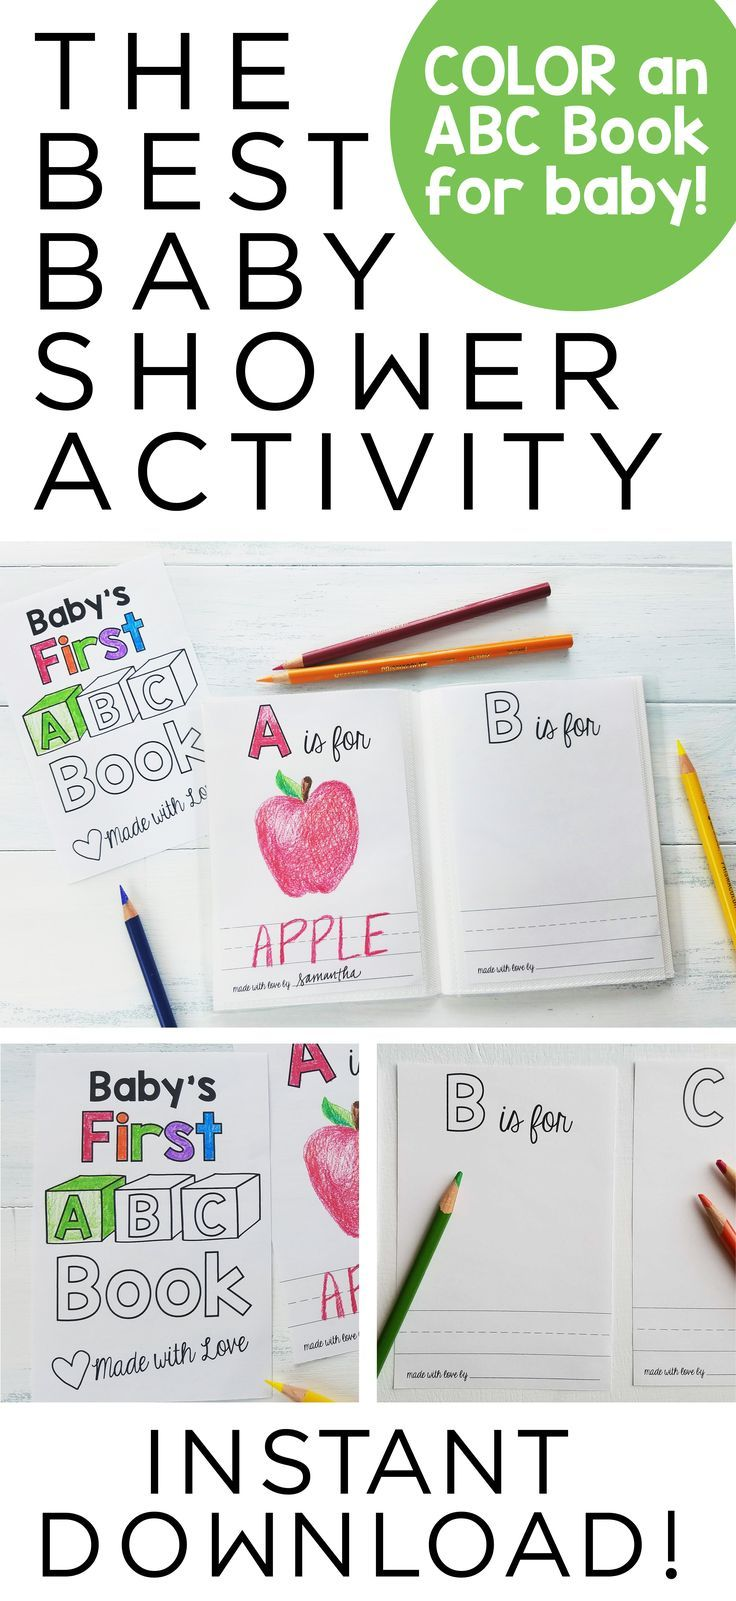 Abc Book Template Diy Baby Shower Activity Alphabet Color Printable Coloring Pdf Personali Baby Shower Guest Book Abc Book Template Diy Baby Shower Gifts